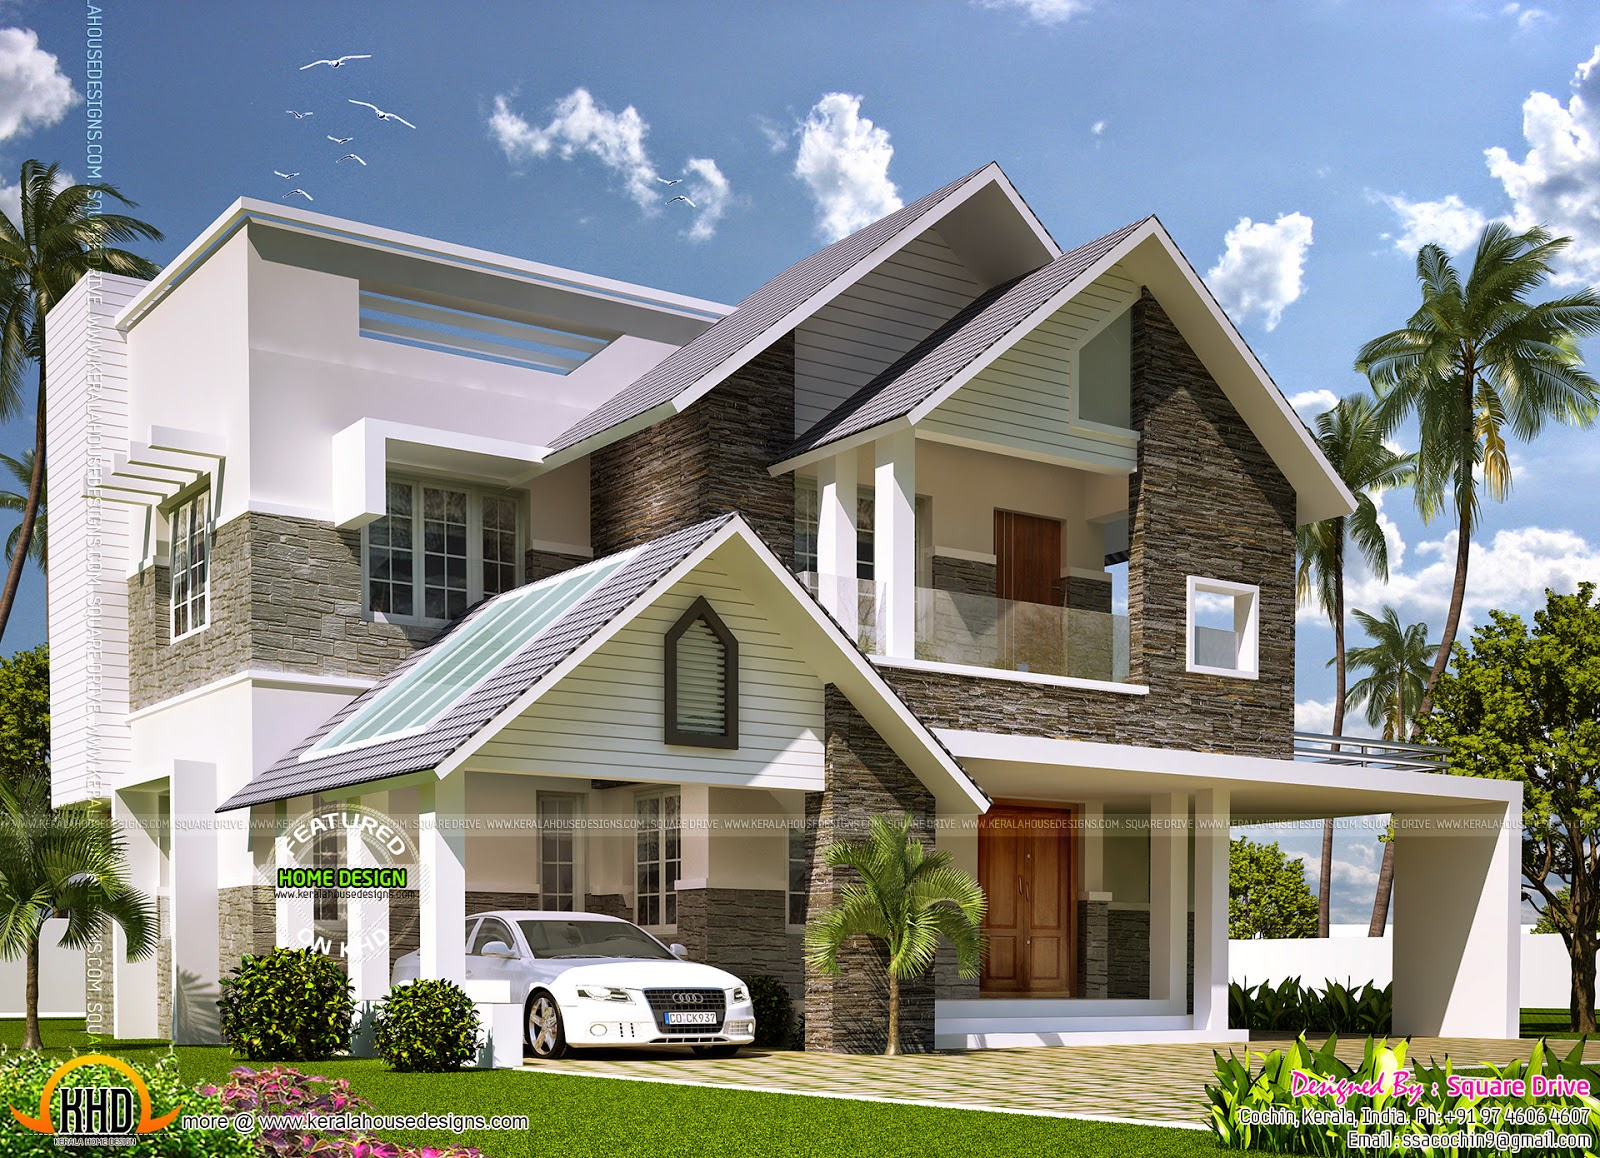 Modern sloping roof mix villa exterior kerala home design and floor plans - Kerala exterior model homes ...